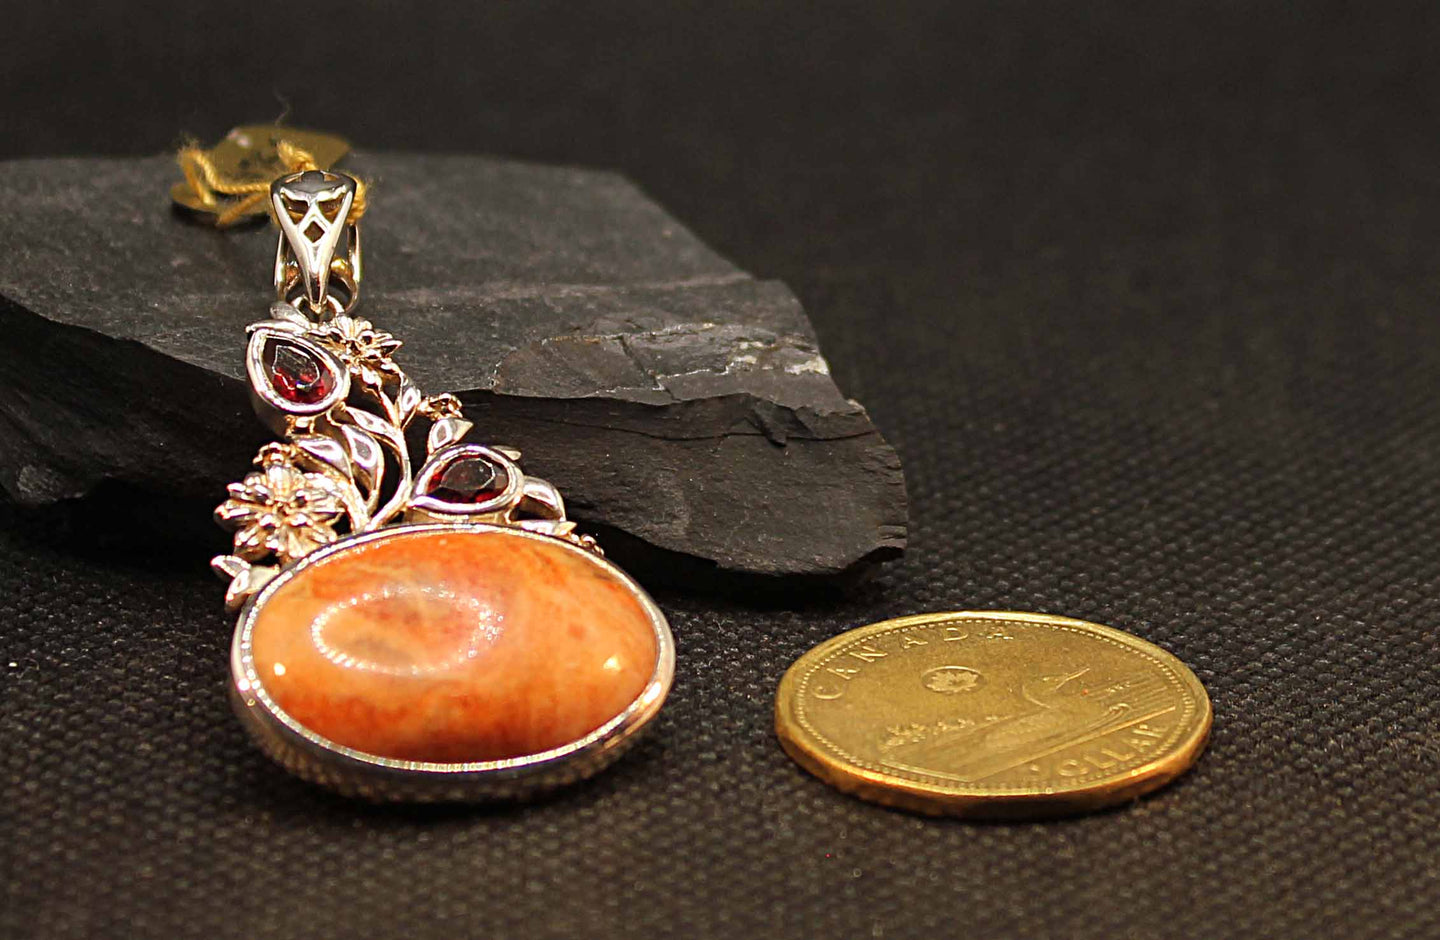 Bamboo coral pendant with garnets set in sterling silver